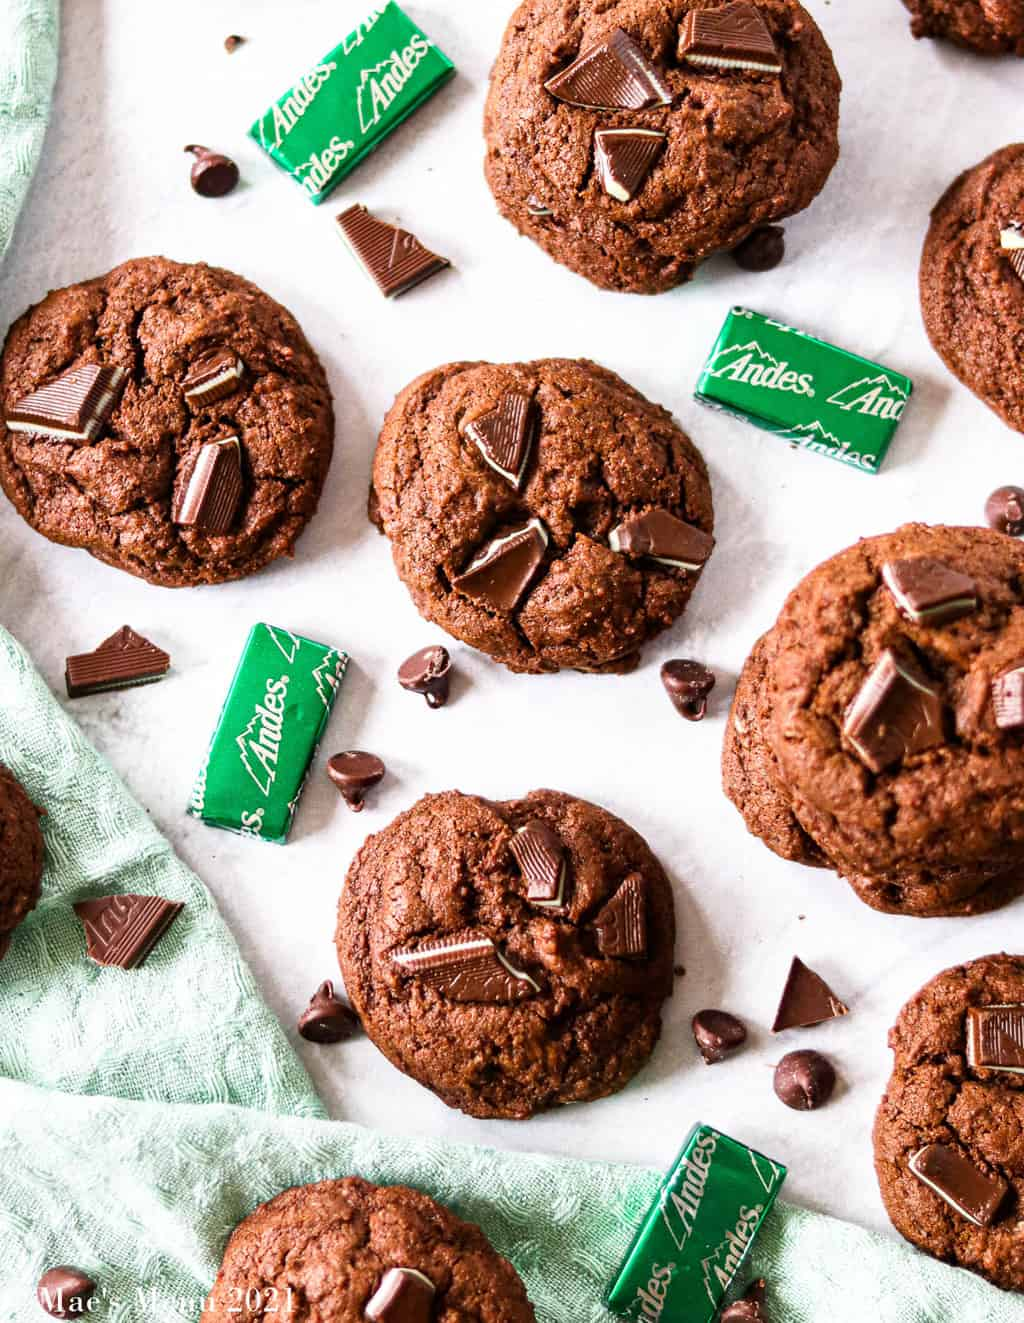 Mint chocolate chip cookies scattered on the counter with chocolate and mints